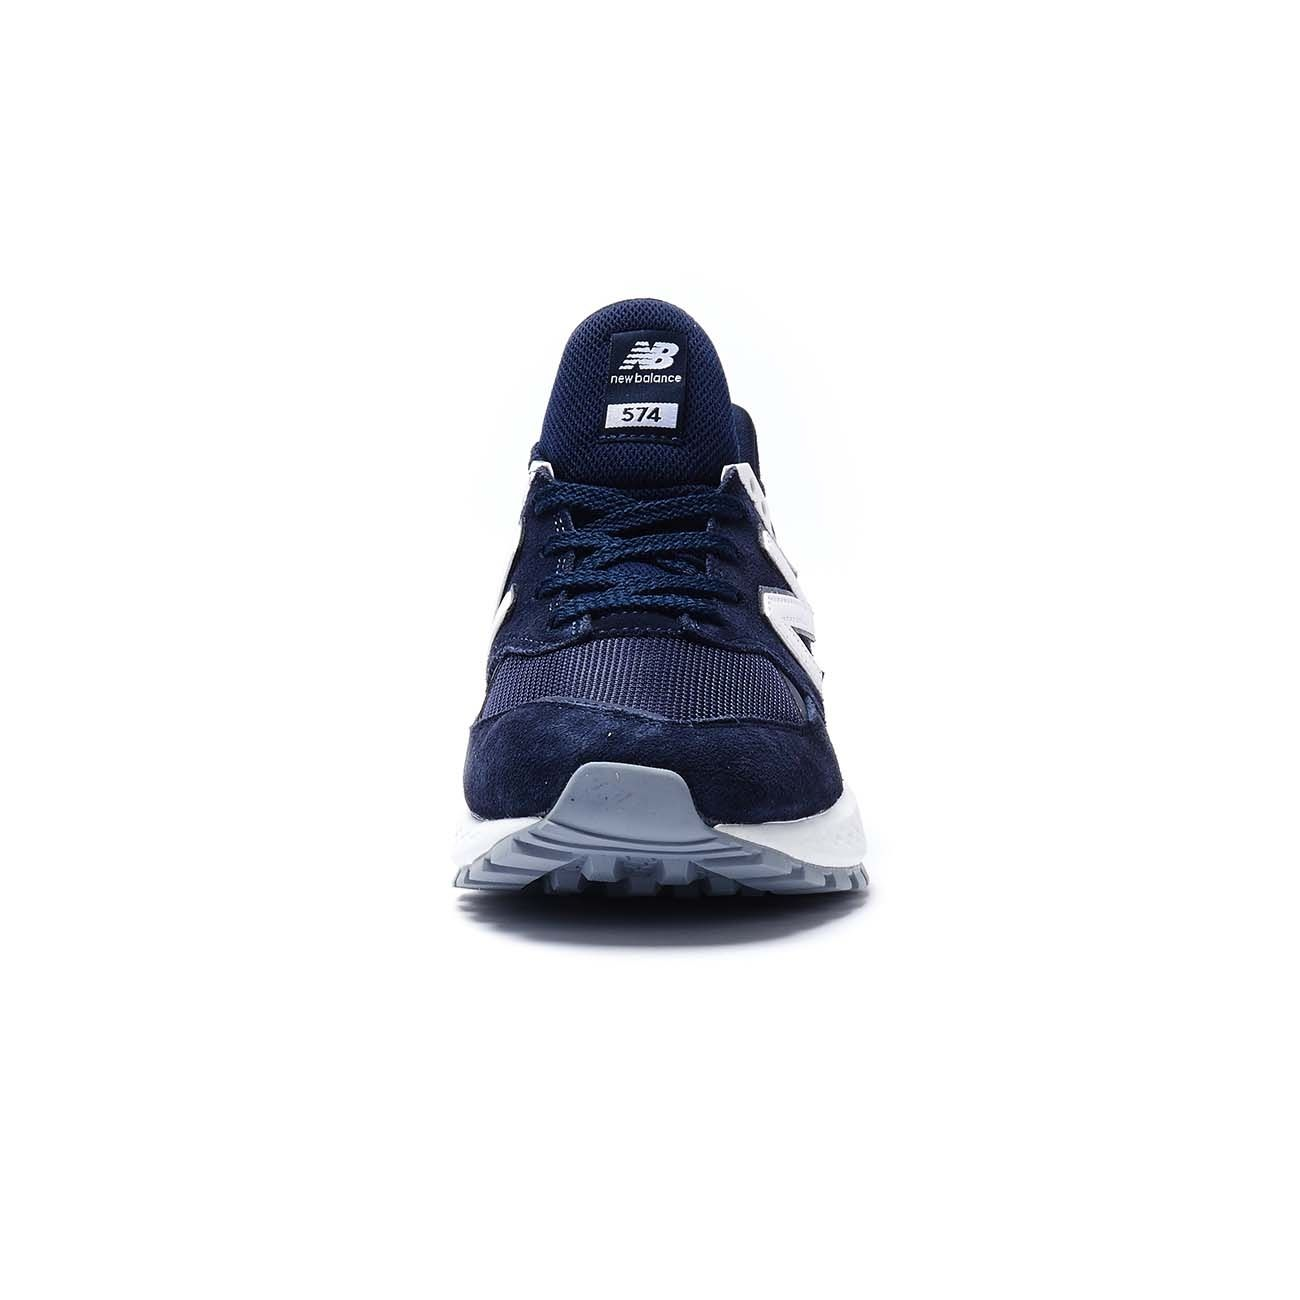 NEW BALANCE SNEAKERS 574 SPORT LIFESTYLE SUEDE MESH Uomo Navy ...